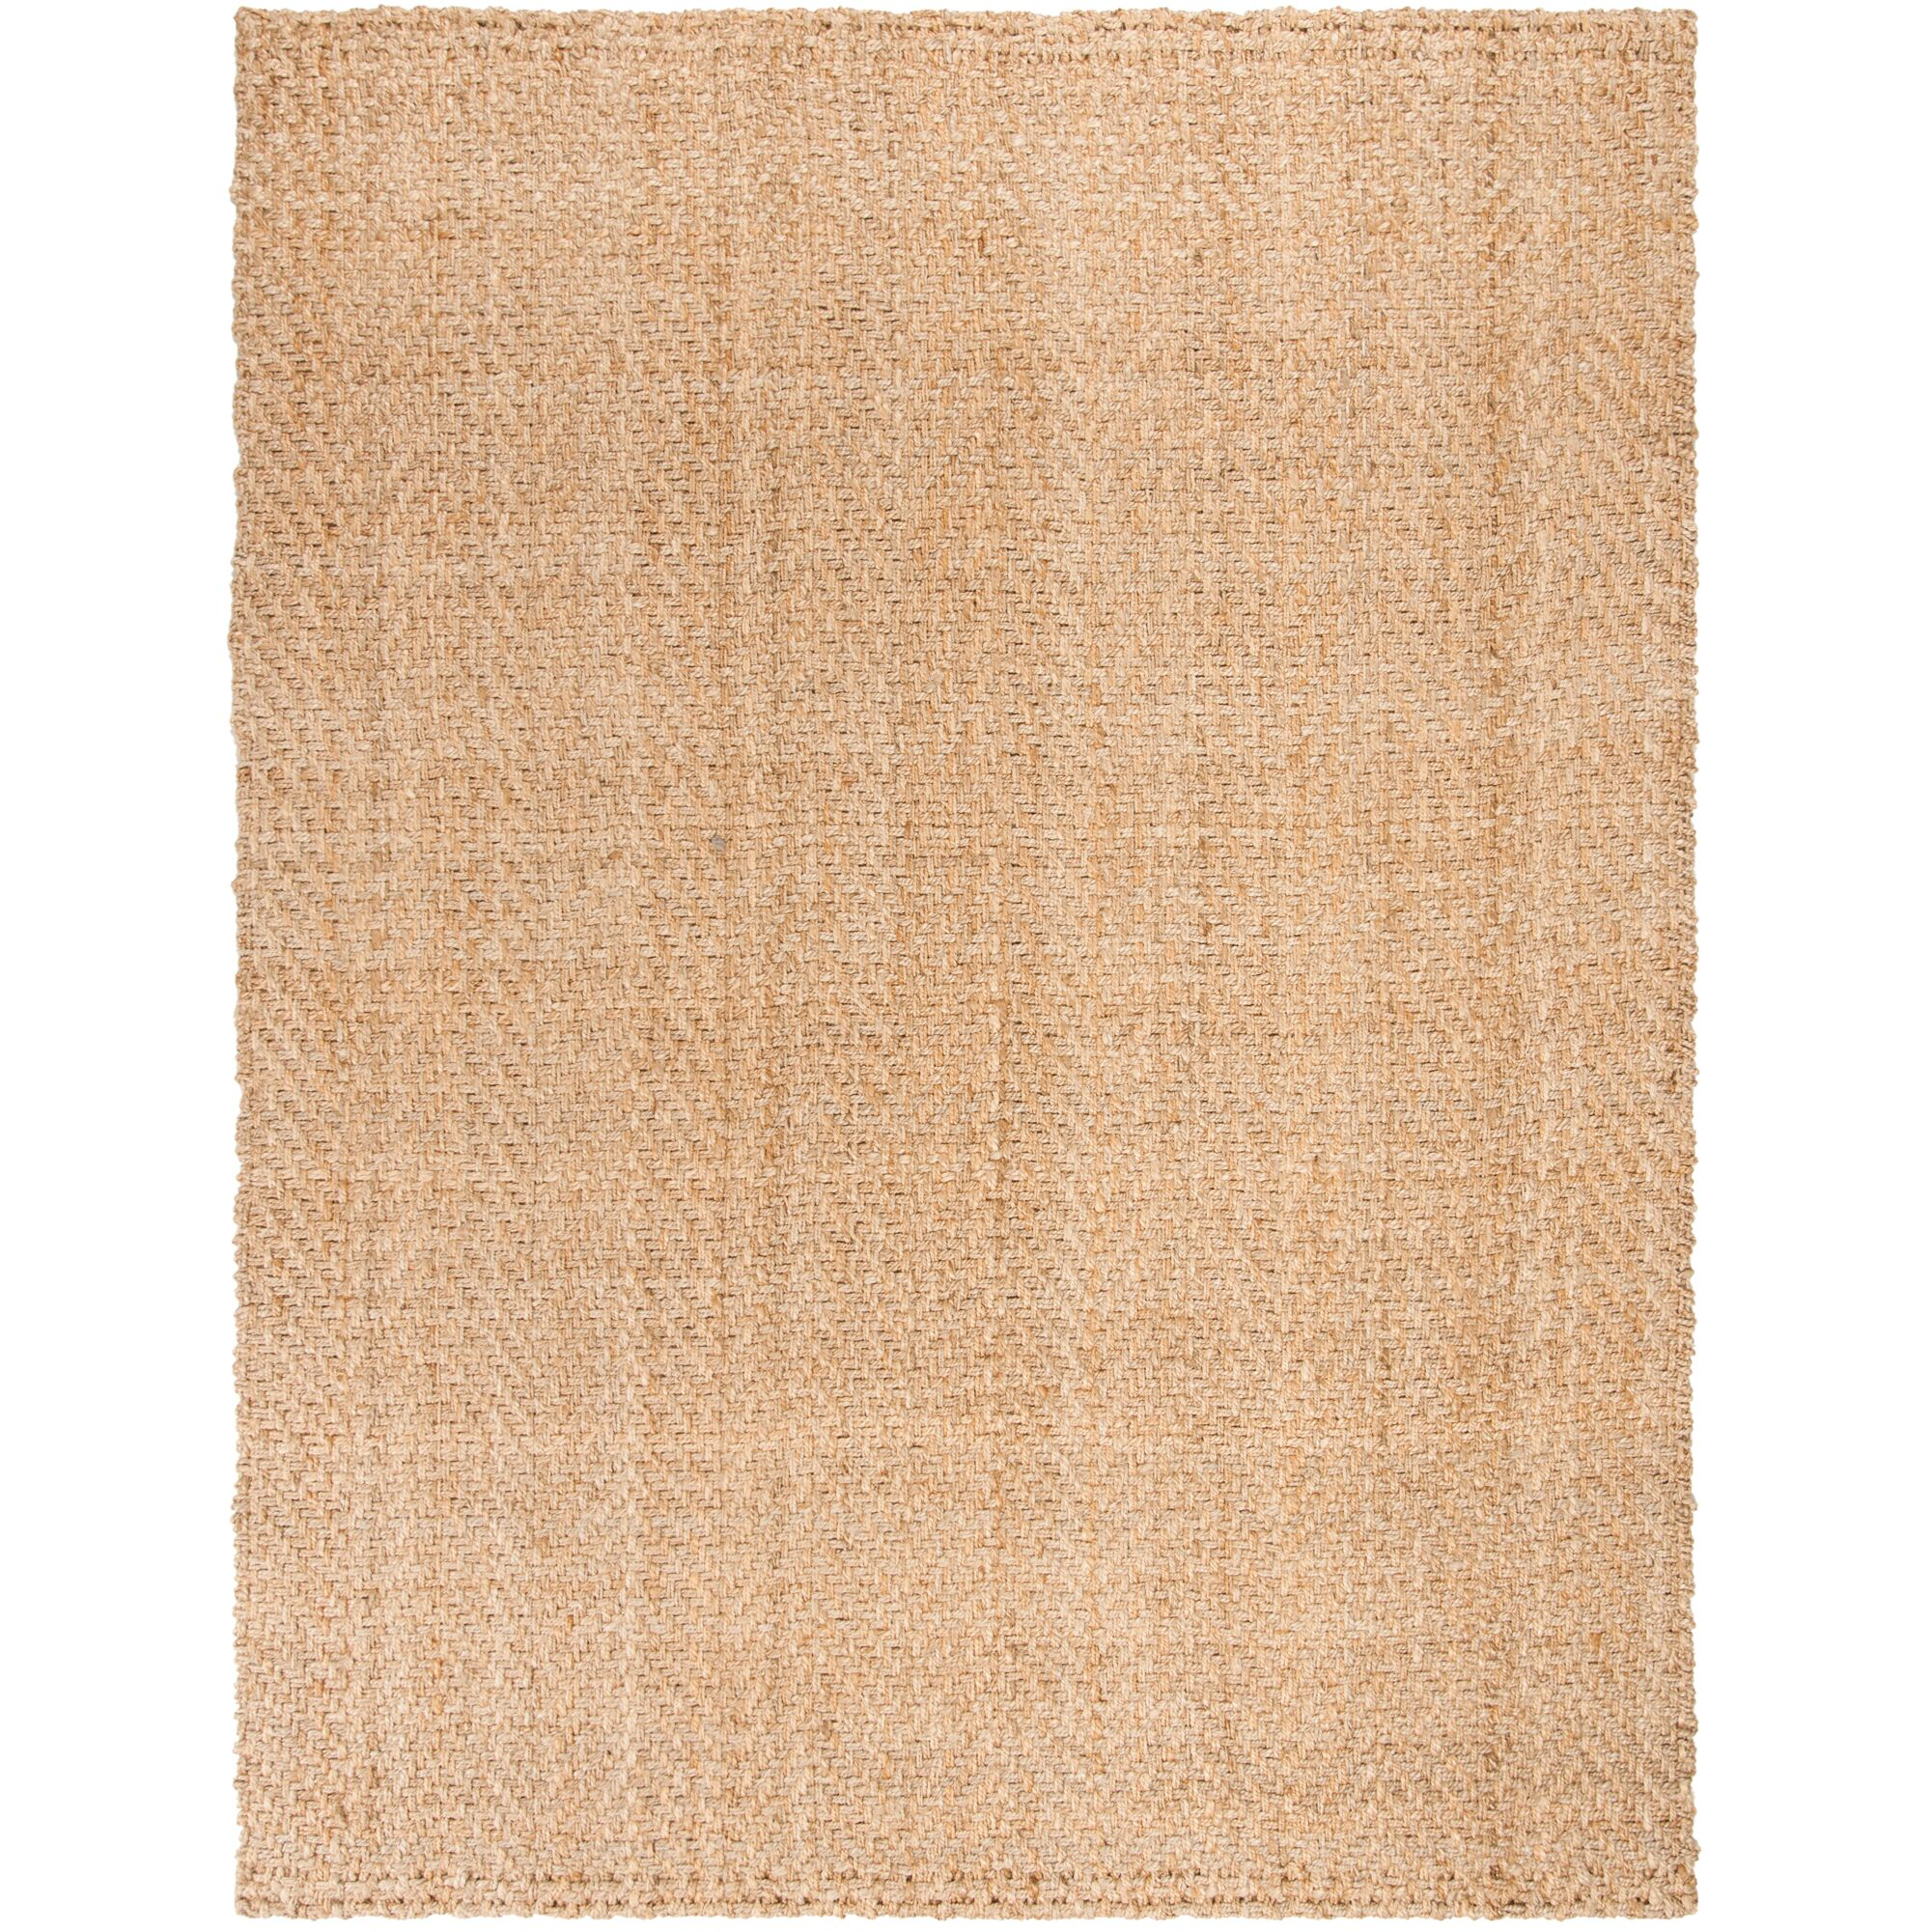 Clea Fiber Hand-Woven Natural Area Rug Rug Size: Rectangle 8' x 10'